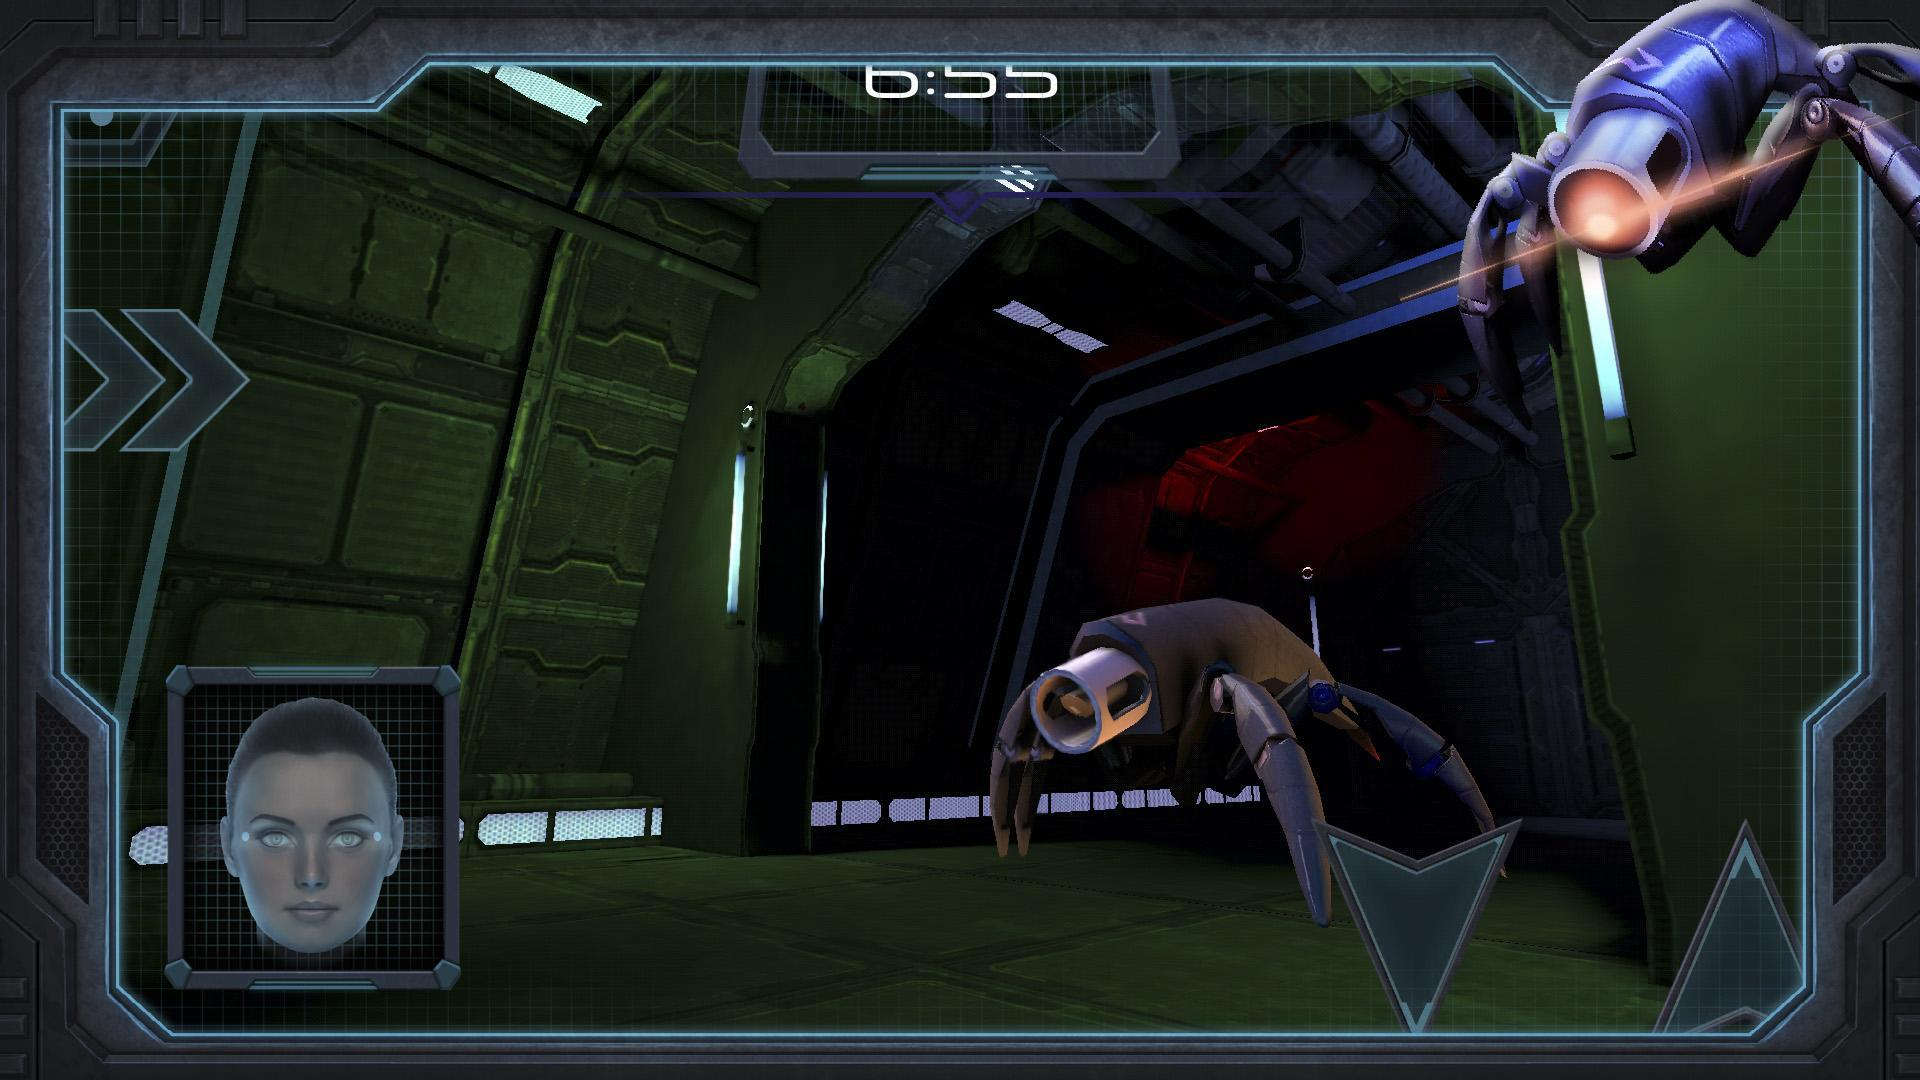 Sci-Fi Adventure Quest 3D - Space 3000 for Android - APK